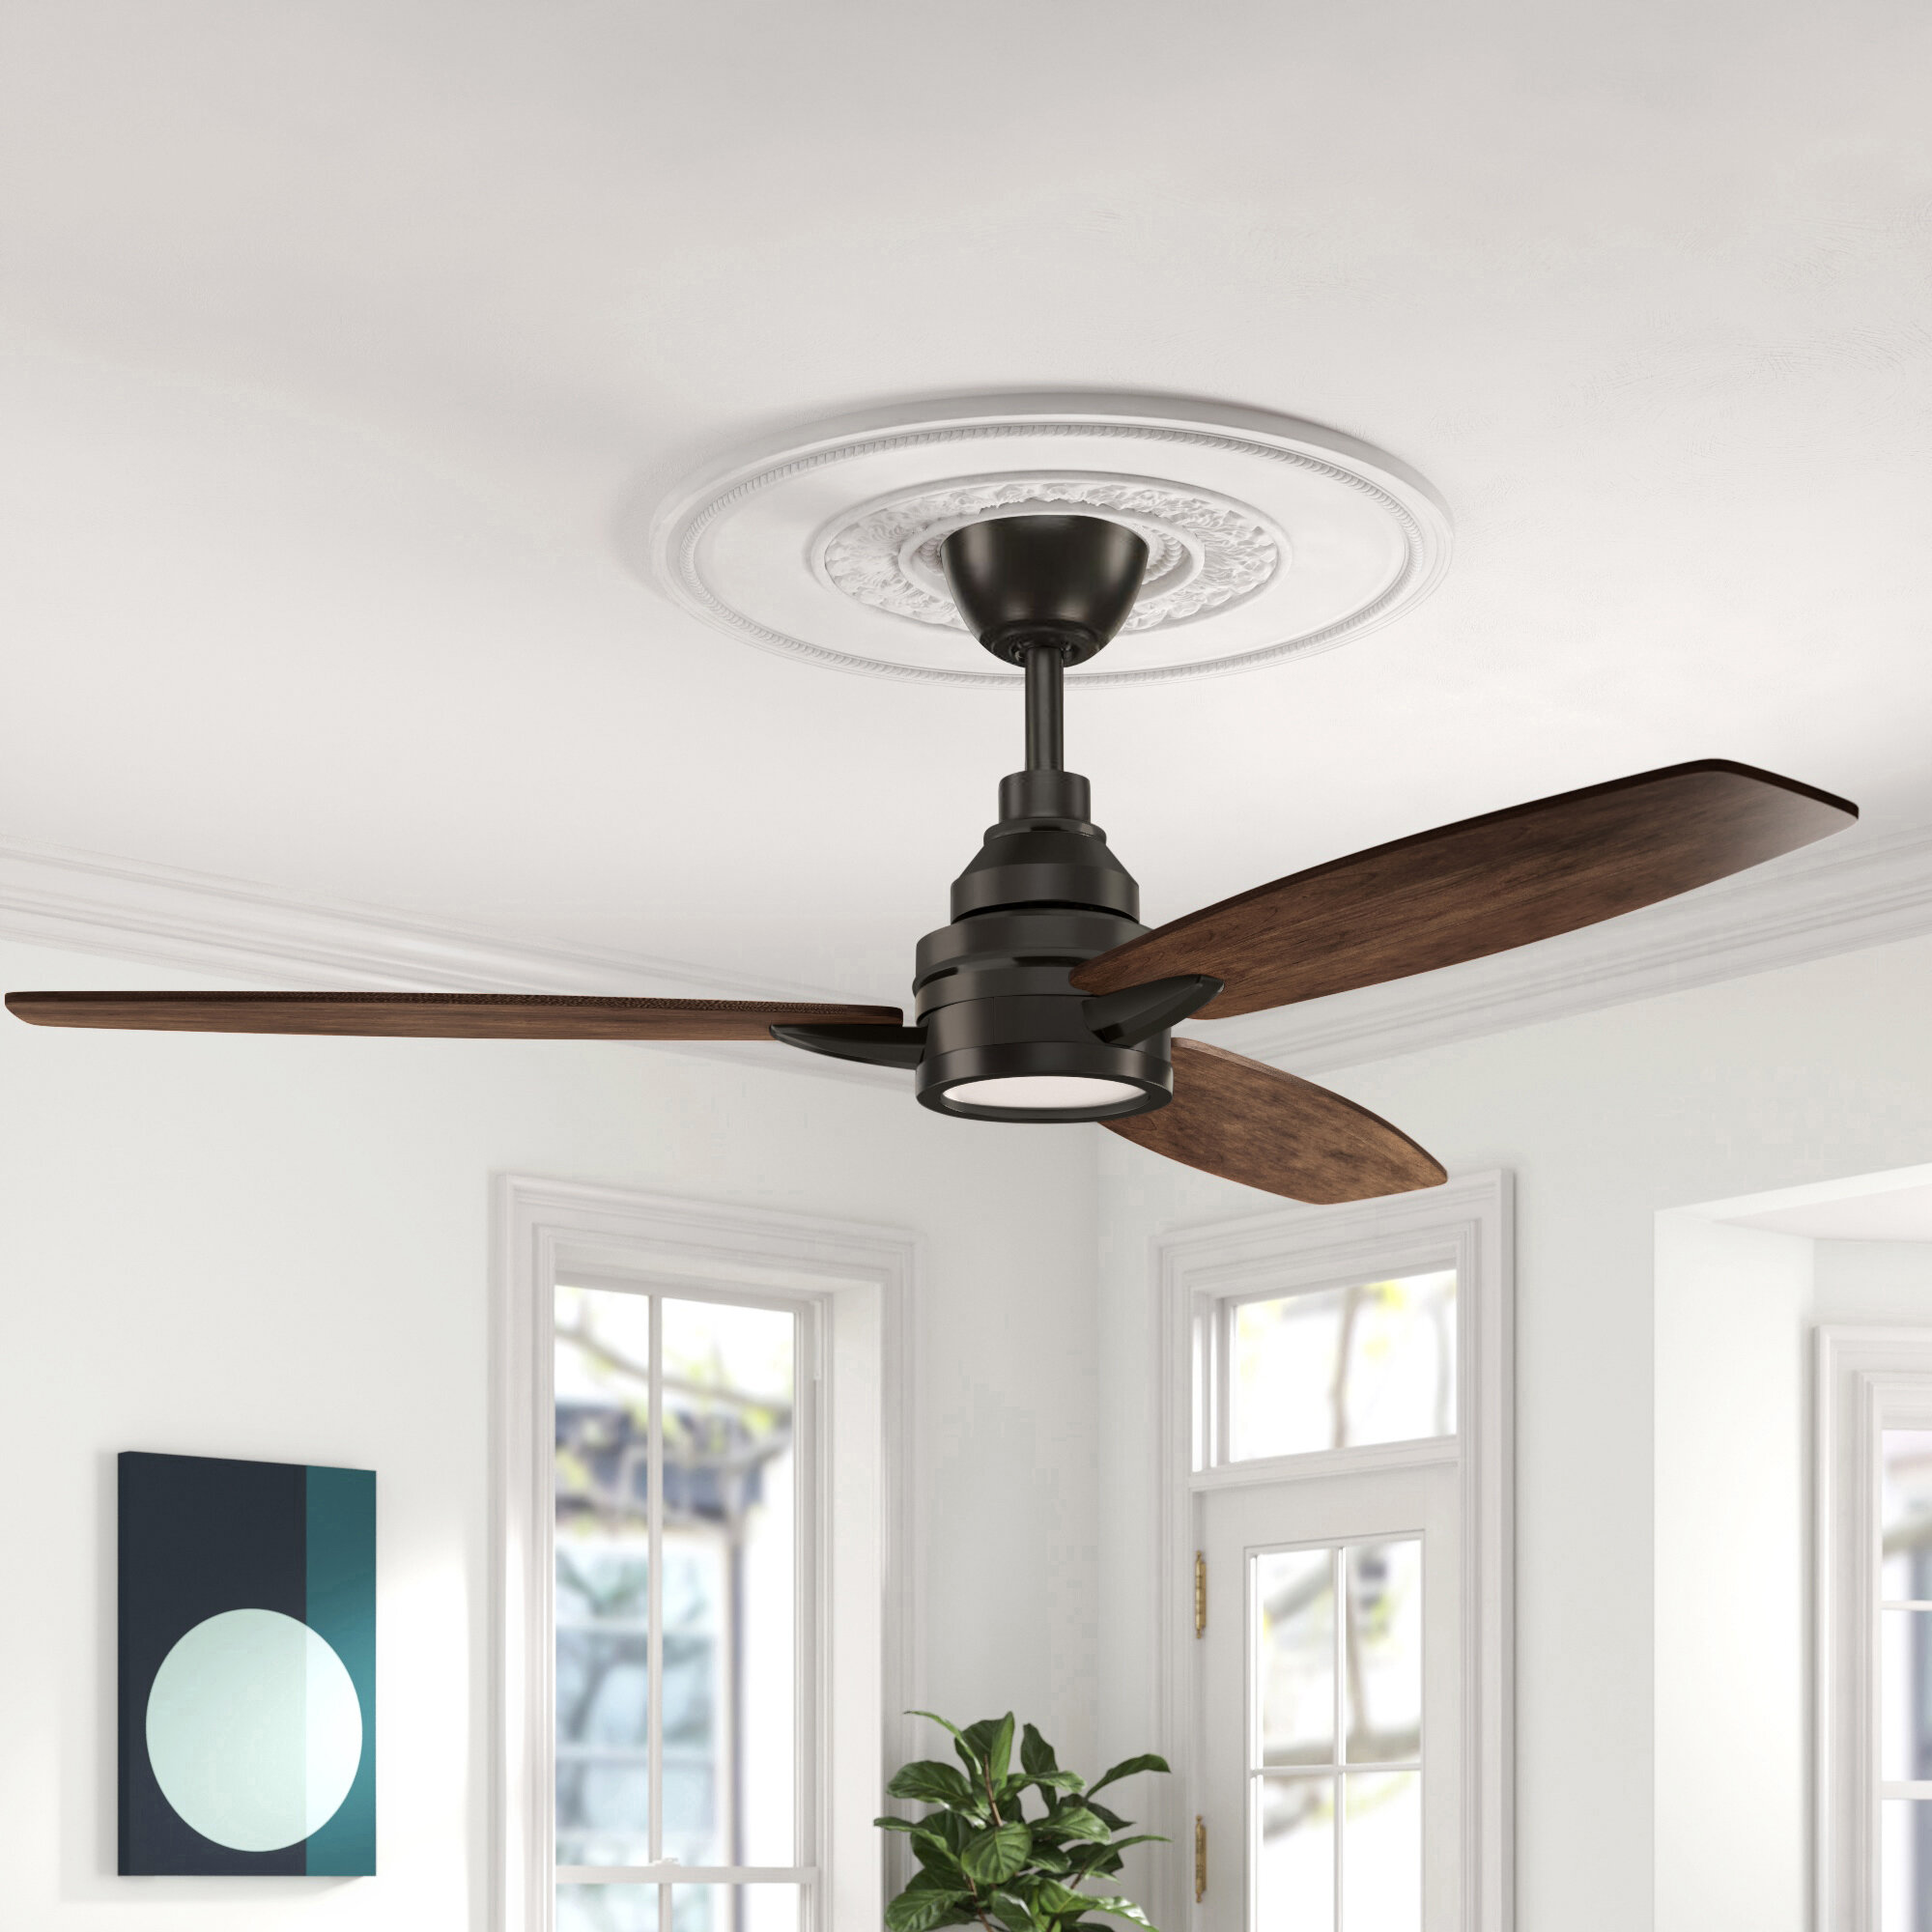 60 Kovach 3 Blade Led Standard Ceiling Fan With Remote Control And Light Kit Included Reviews Birch Lane